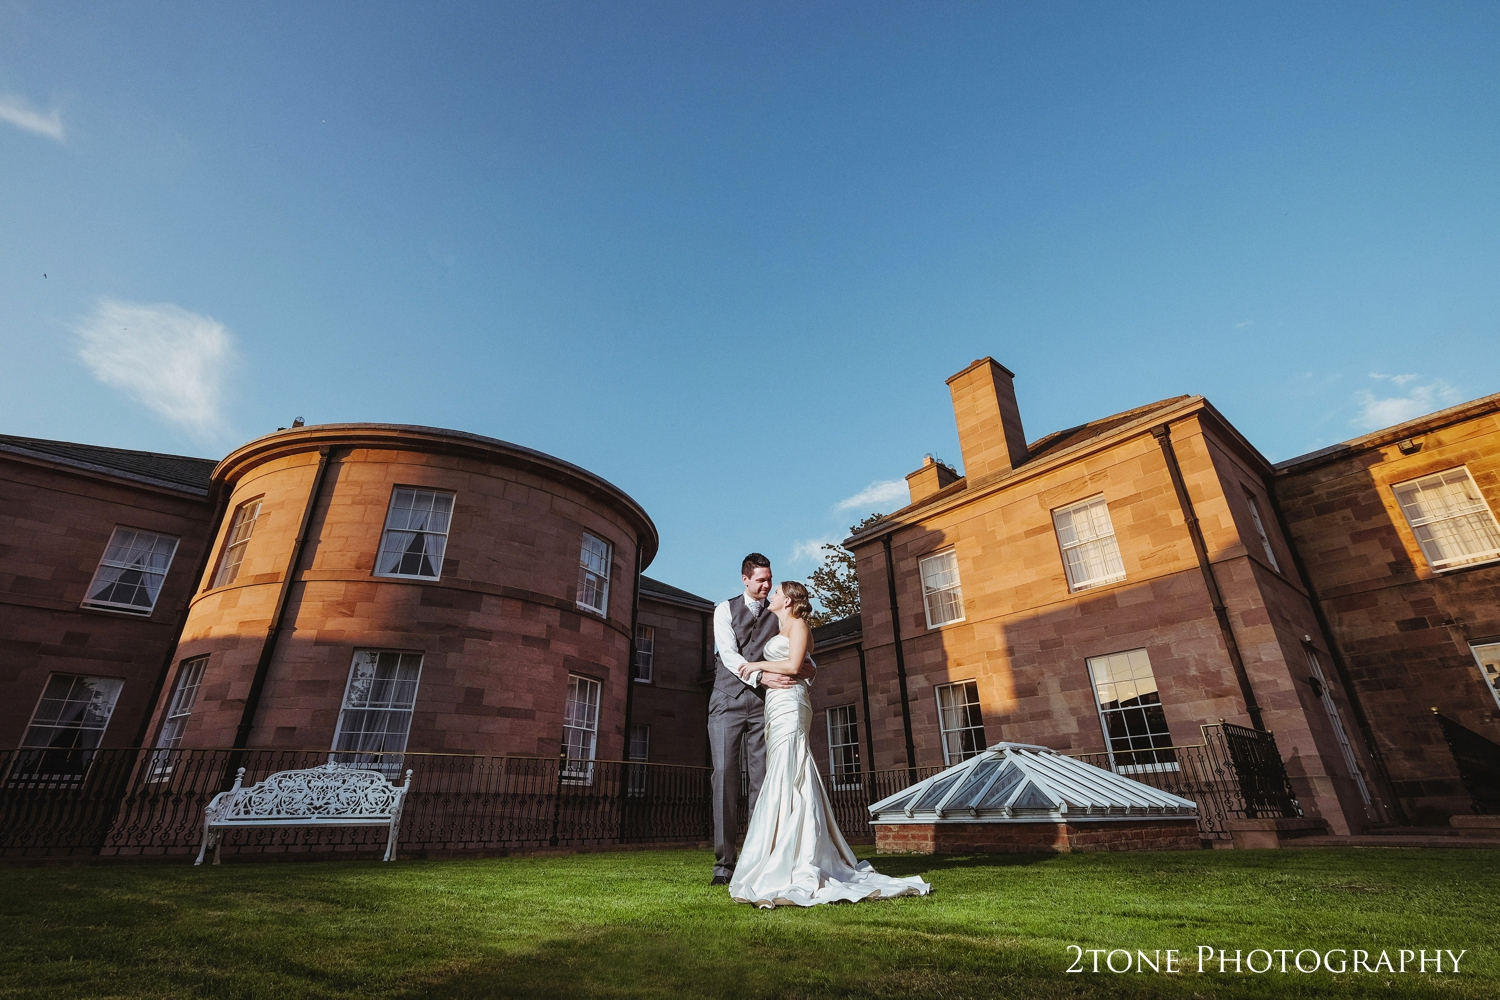 We found a spot of wonderful light asthe building was lit in gold from thedropping sun. One last perfect opportunity for a romantic portrait.